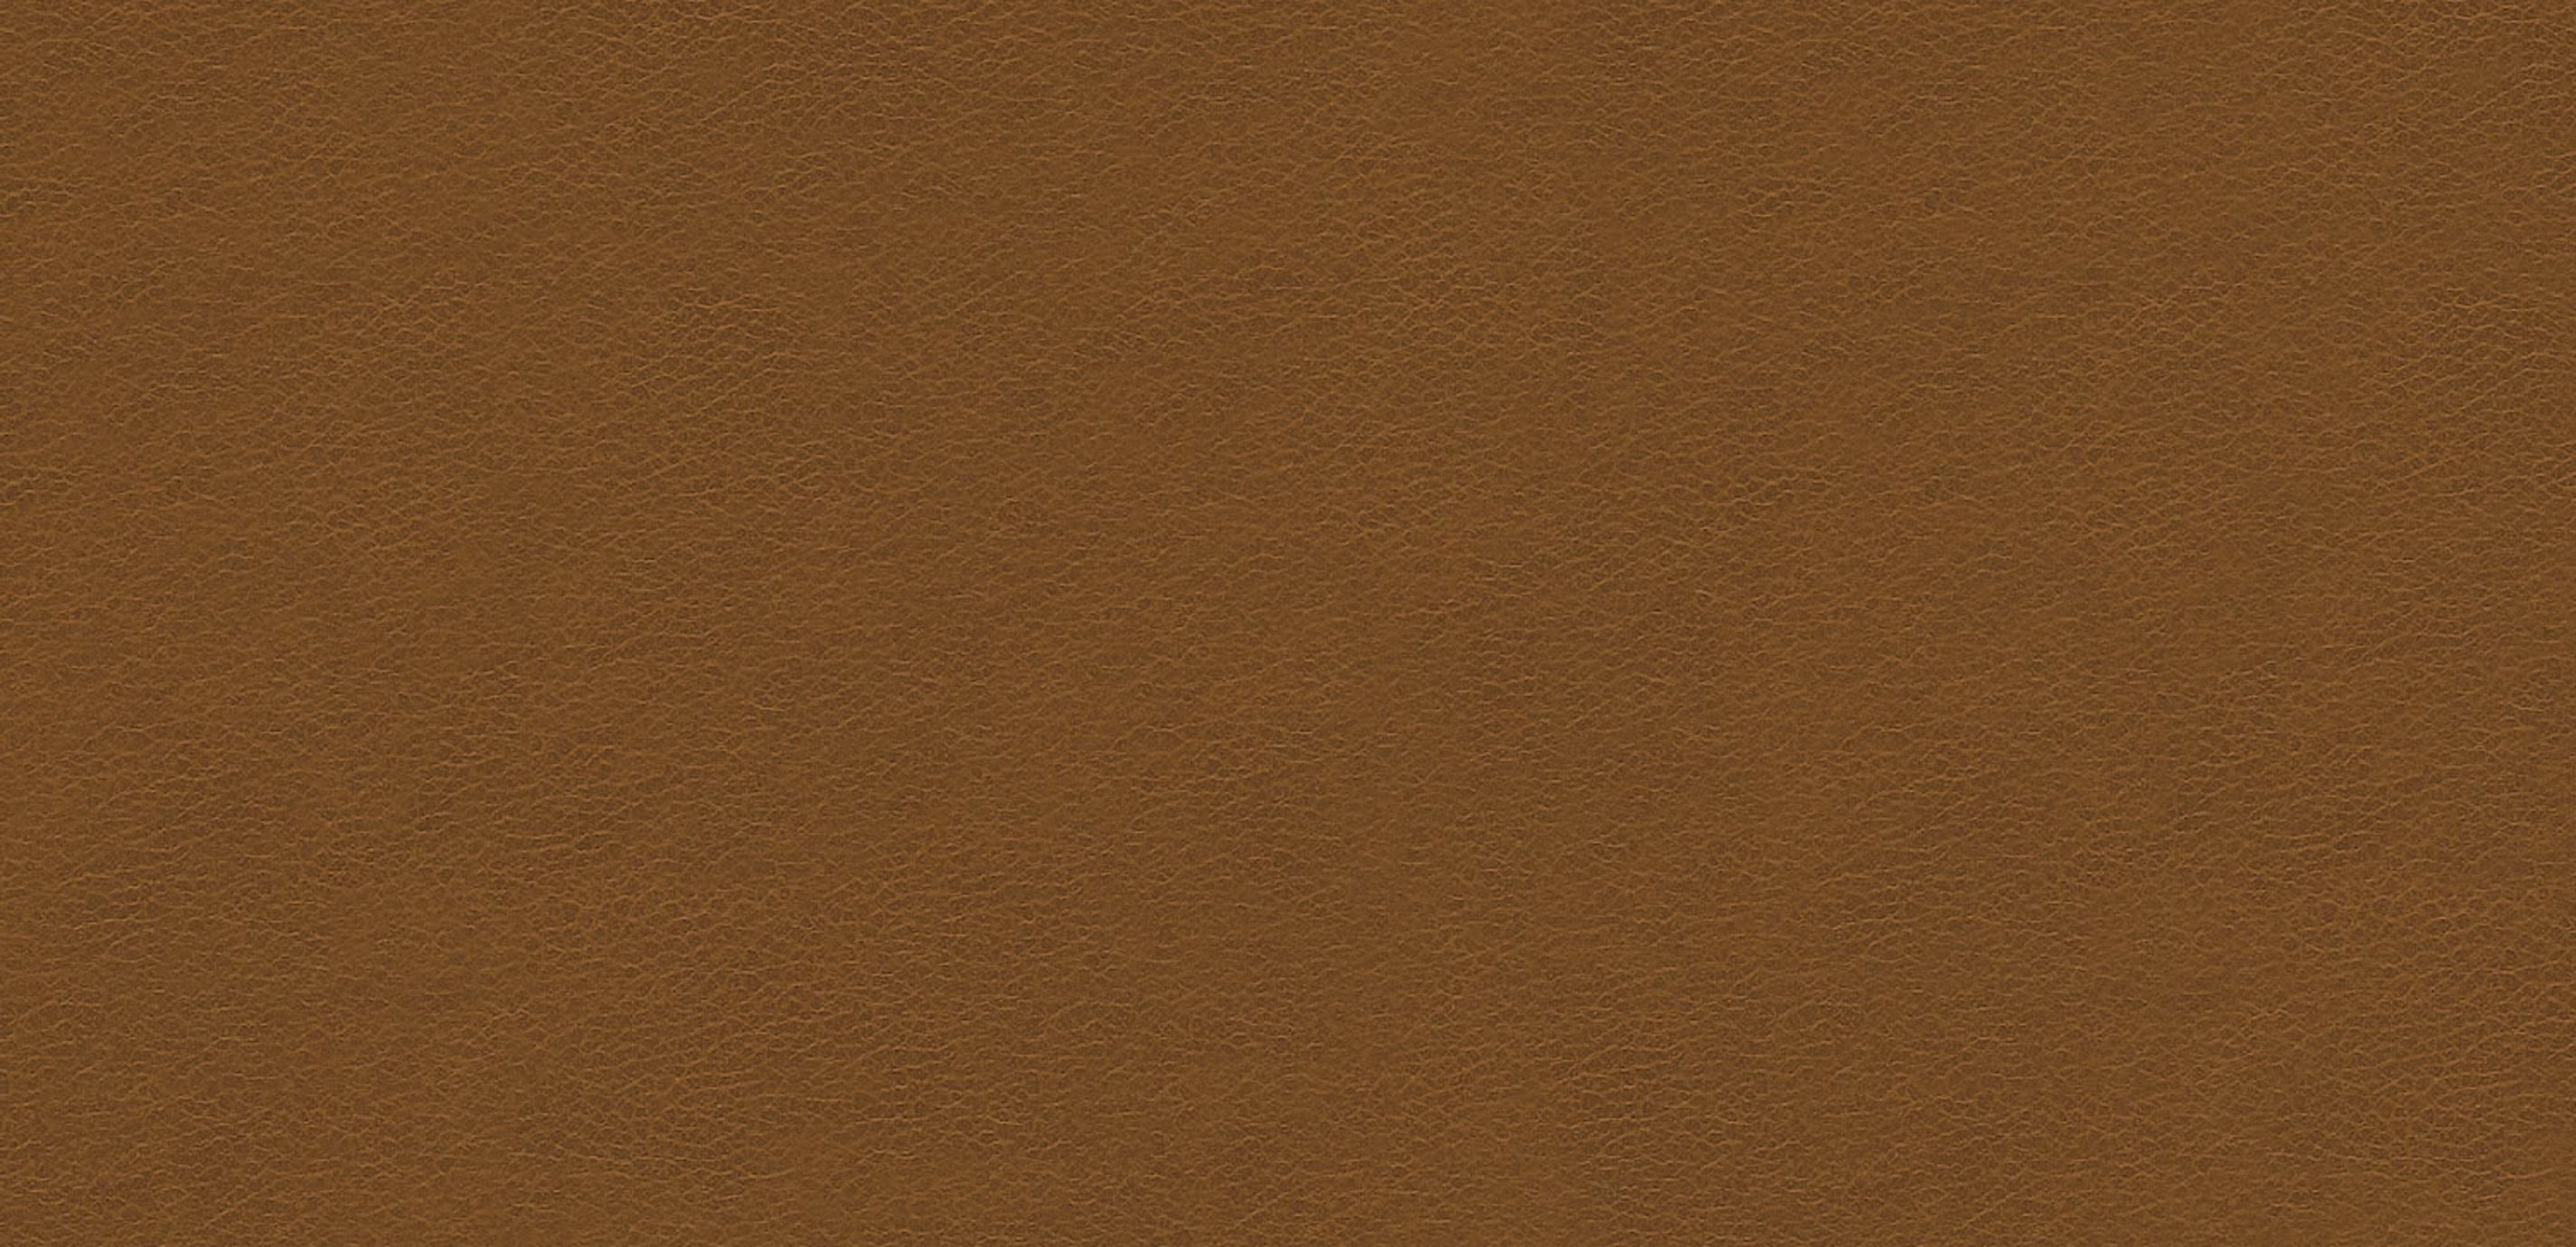 Omni Light Brown Leather Swatch  Ethan Allen  Ethan Allen